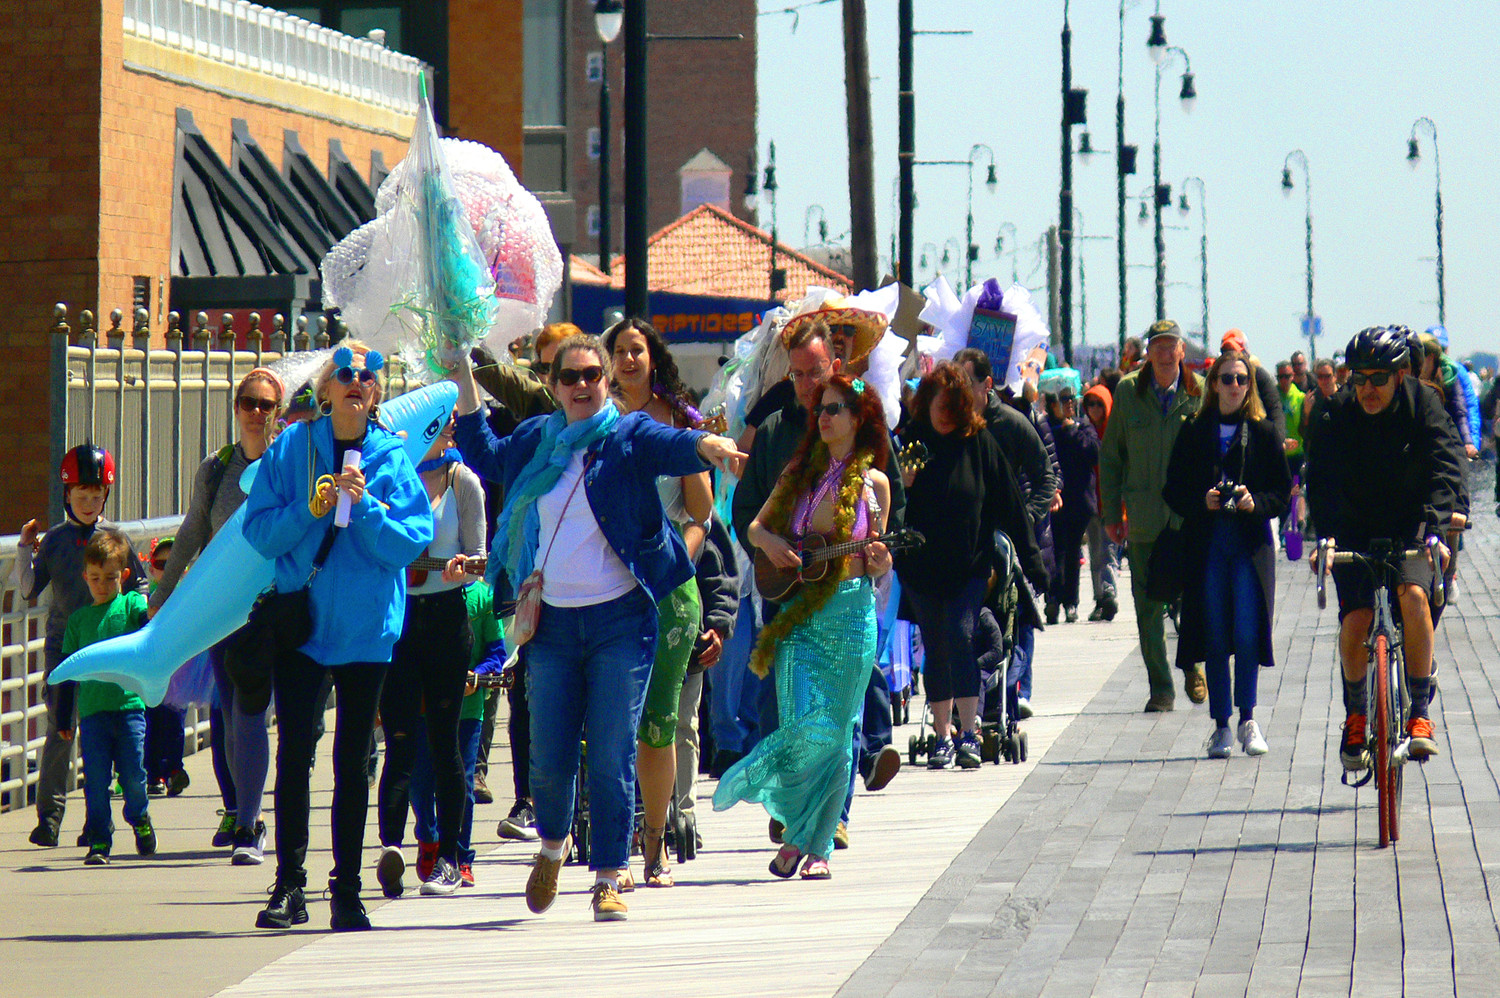 Johanna Mathieson, executive director of Artists in Partnership, far left, and Elizabeth Connolly, director of development for the LBNY-Arts Council, led an energetic parade along the boardwalk last Sunday at the Jellyfish Jamboree Earth Day celebration.